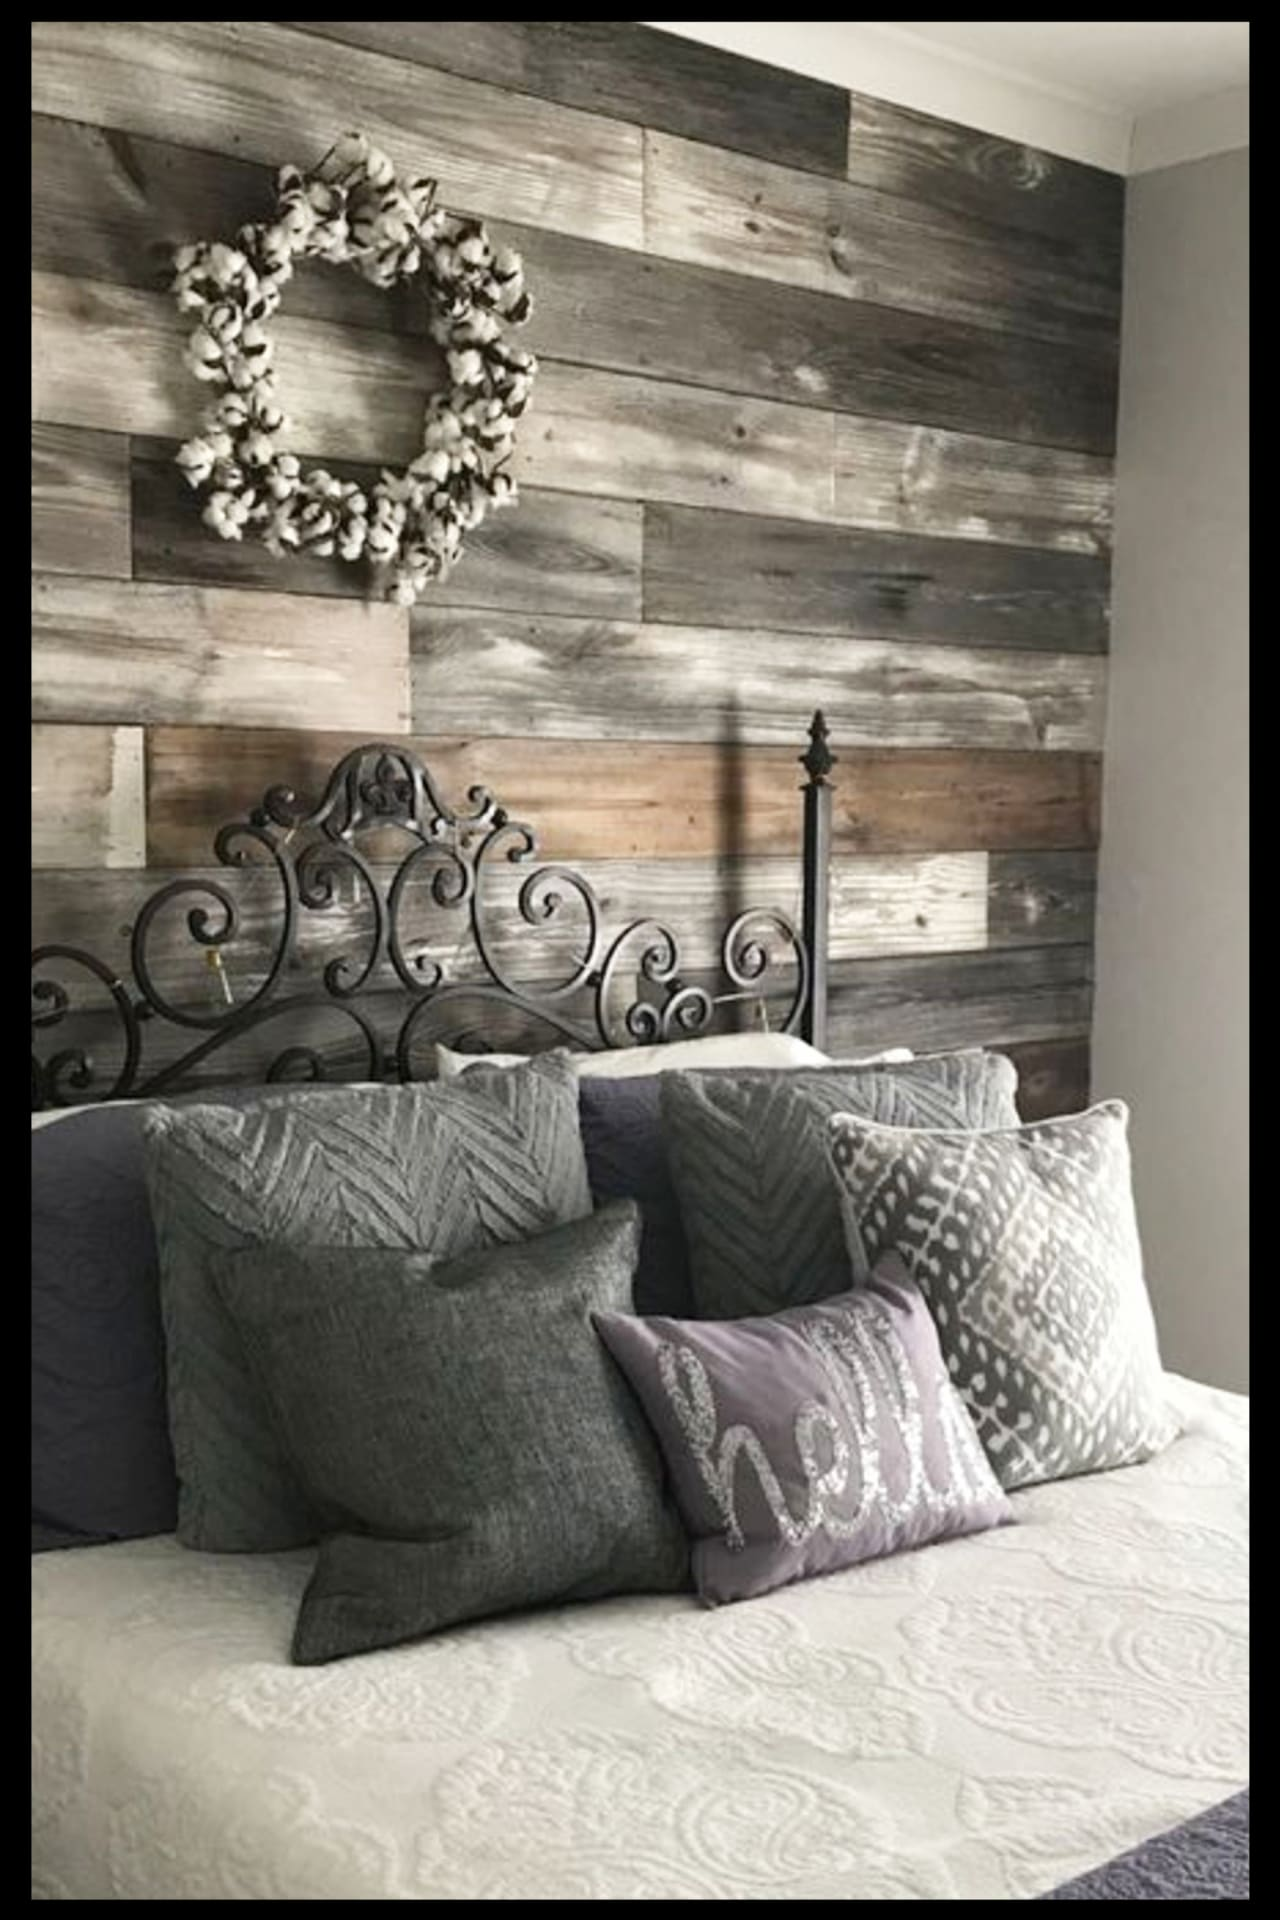 Pallet projects - easy DIY pallet wall decor - panel your walls with old pallet wood such clever home decorating pallet projects - pallet wall in bedroom behind bed